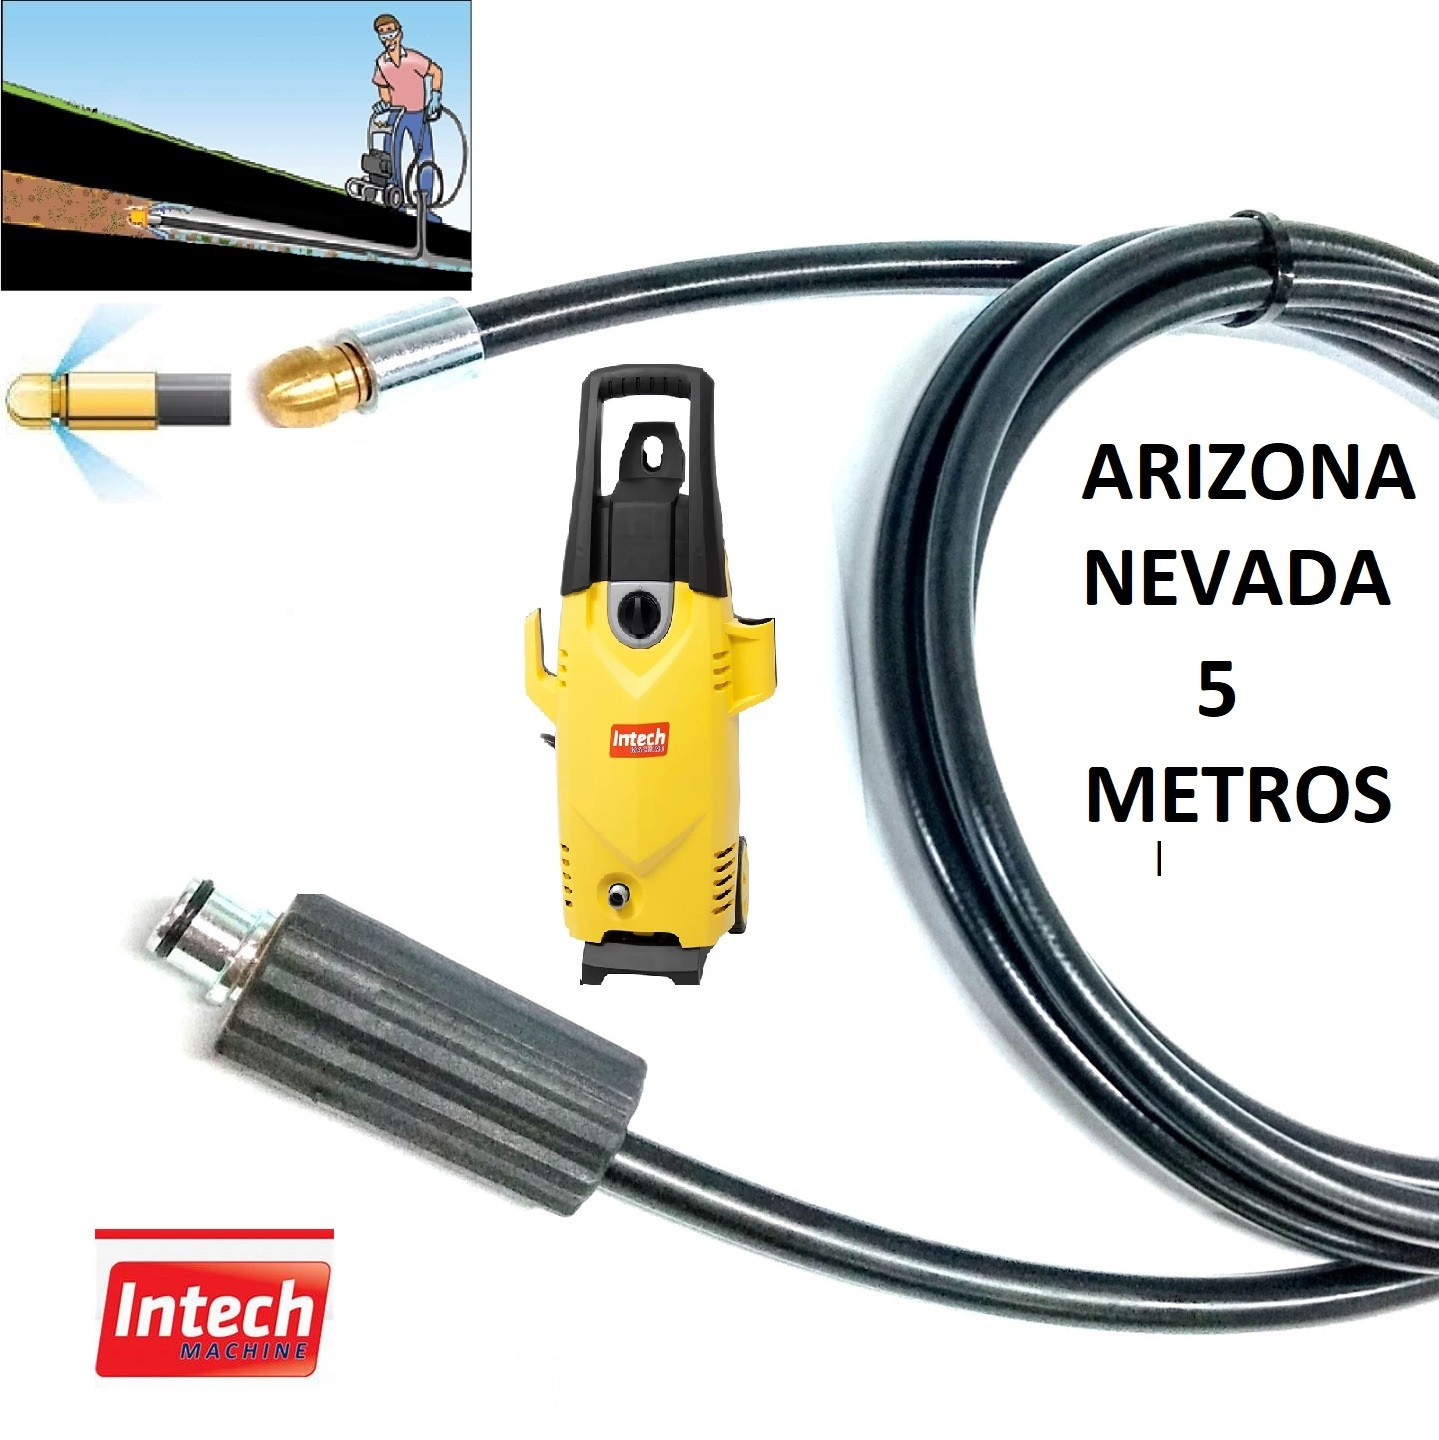 Mangueira Desentupidora Esgoto 5 Metros ARIZONA,NEVADA Intech Machine